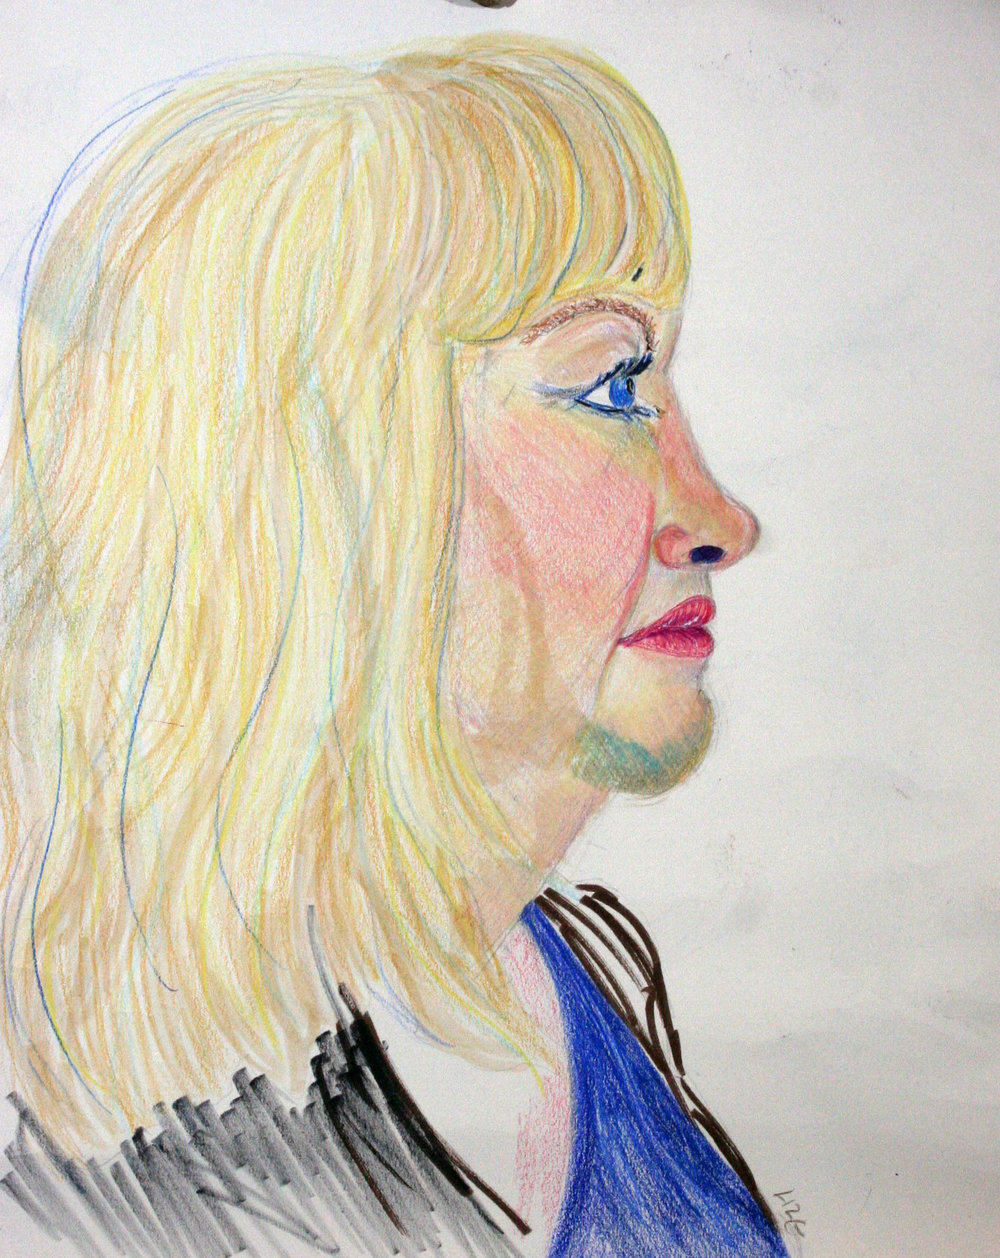 Liz Gulaian did this mixed media drawing.